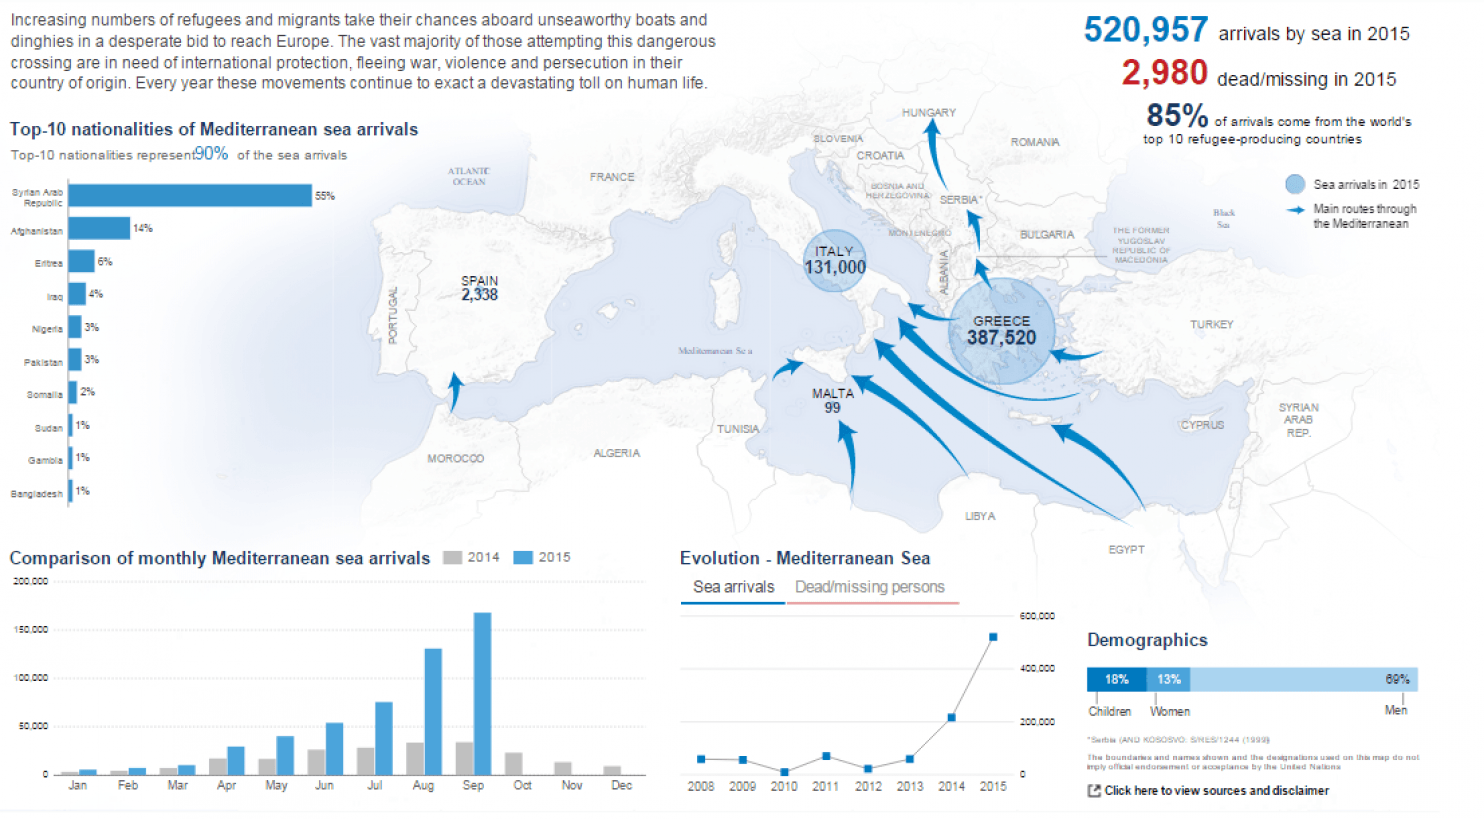 wapo-migration-flows-and-monthly-sea-arrivals